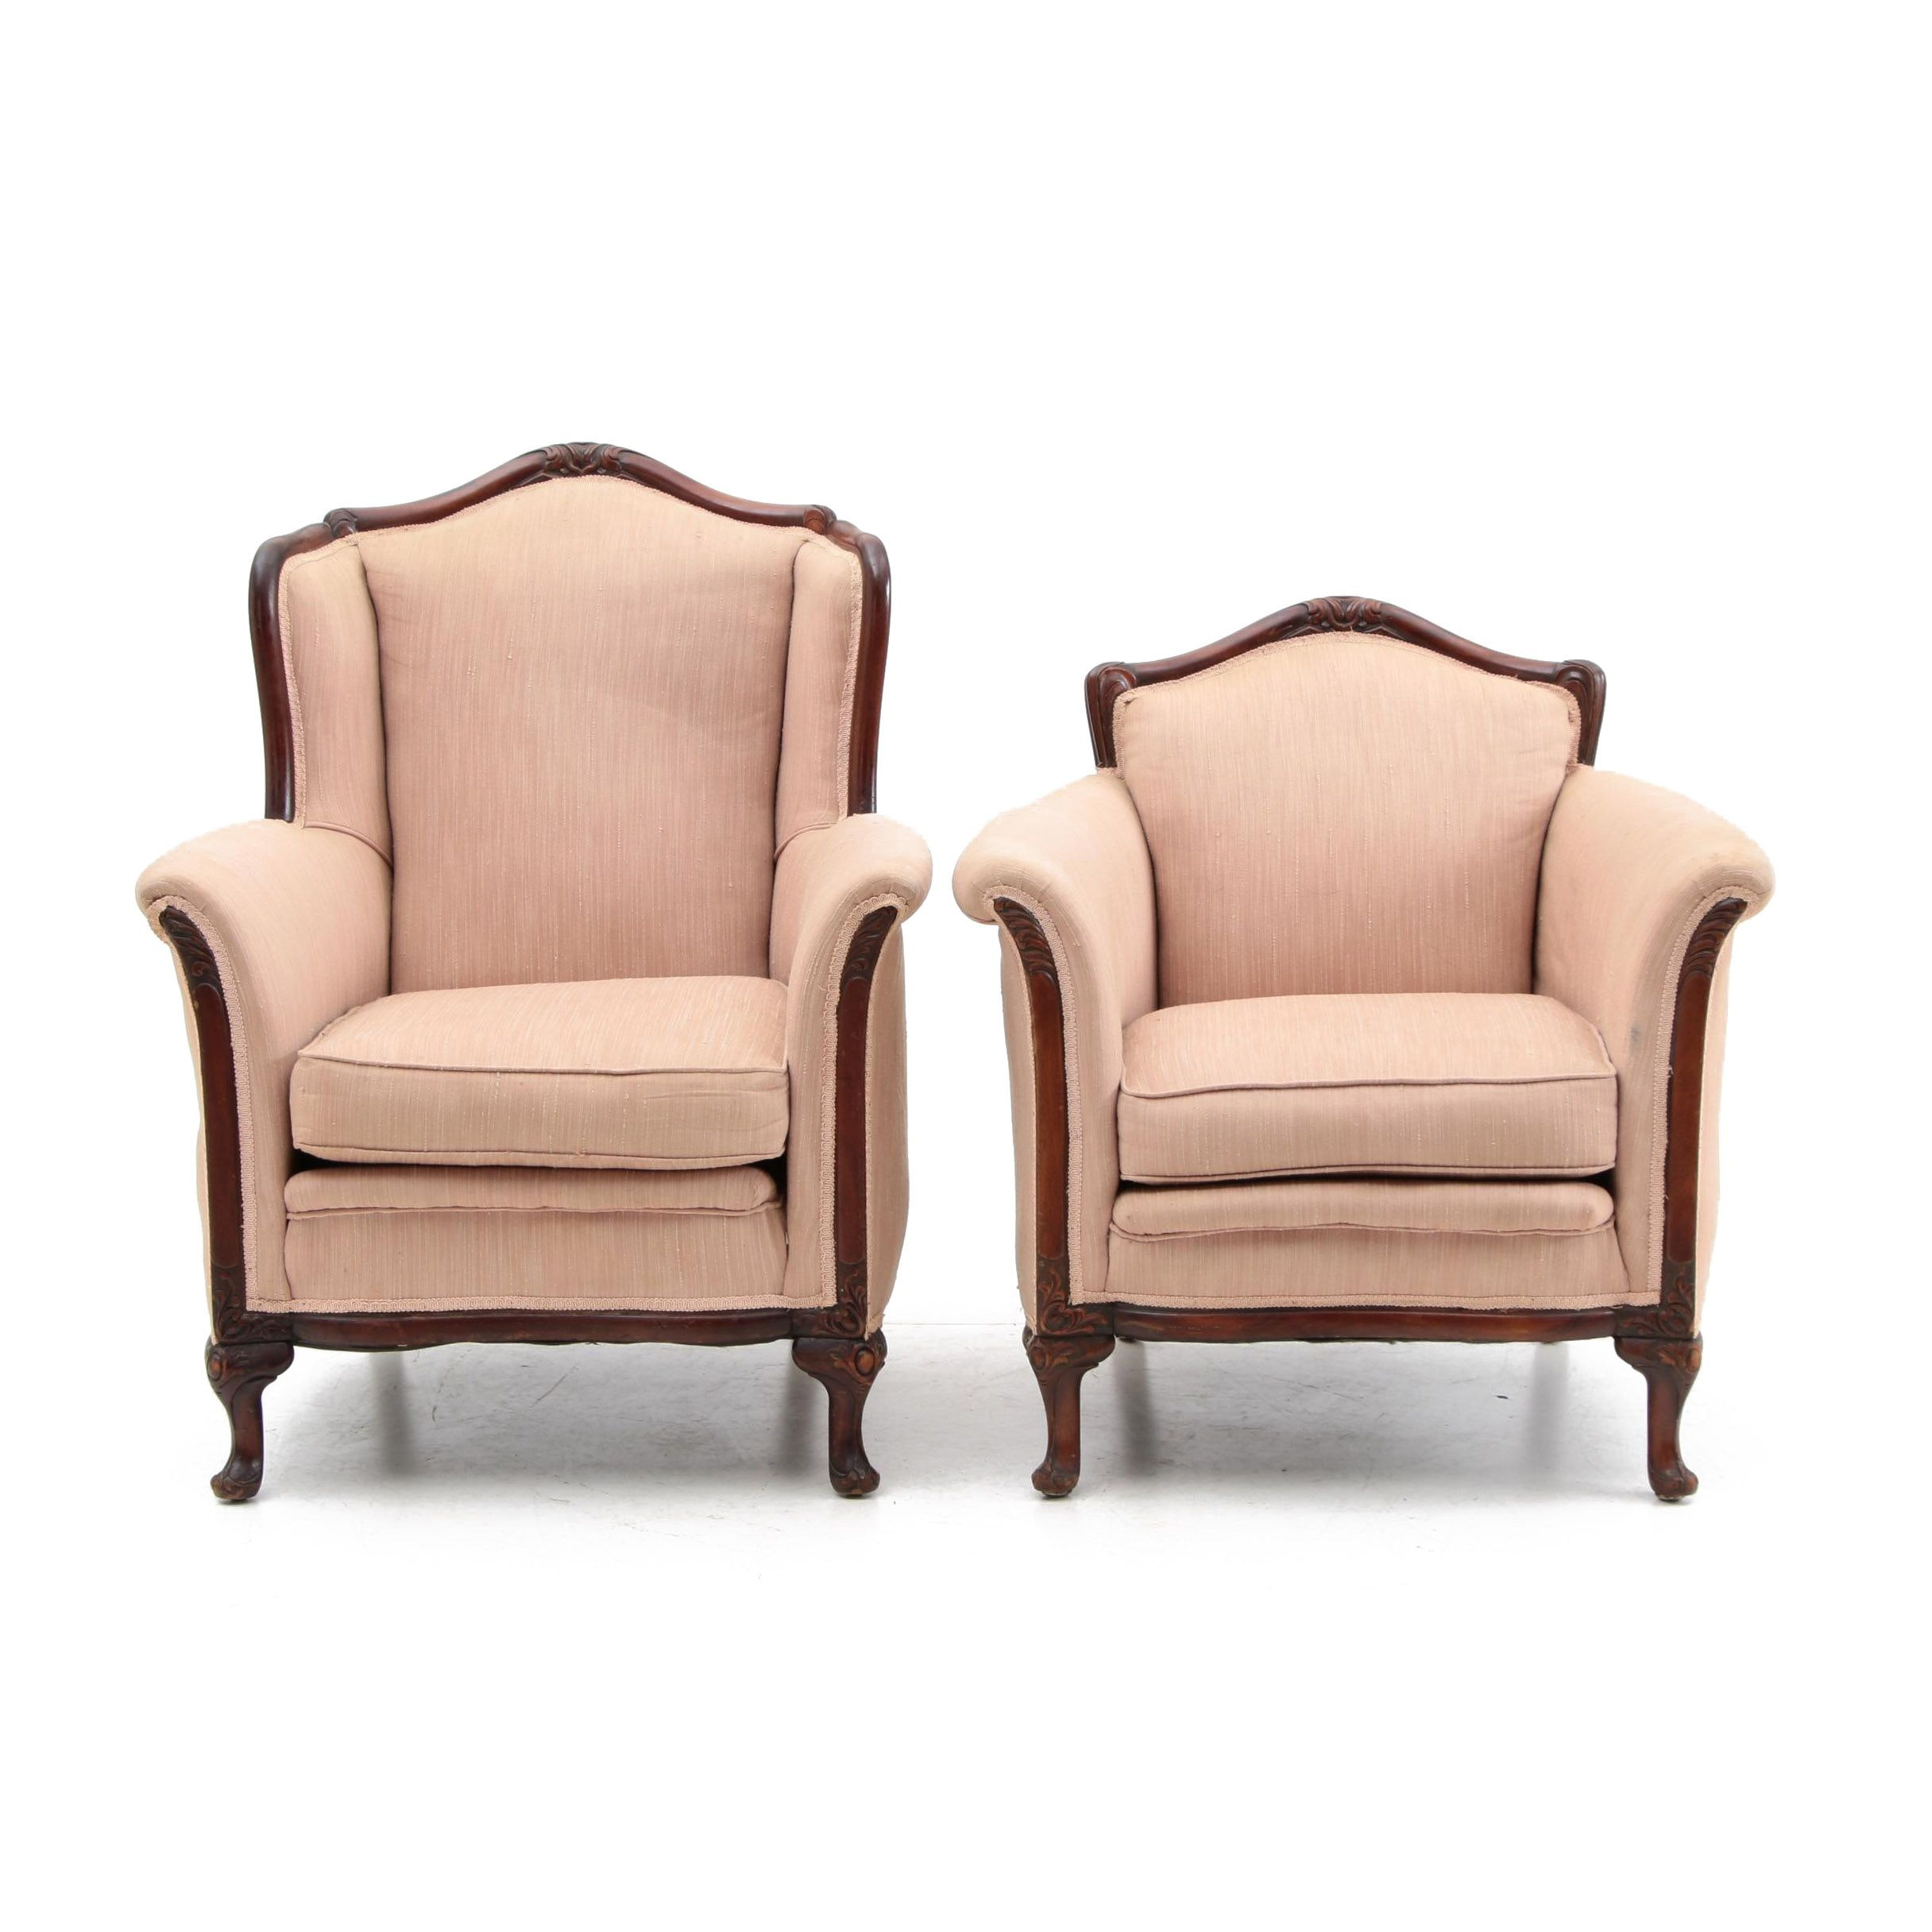 Vintage French Provincial Style Arm Chairs